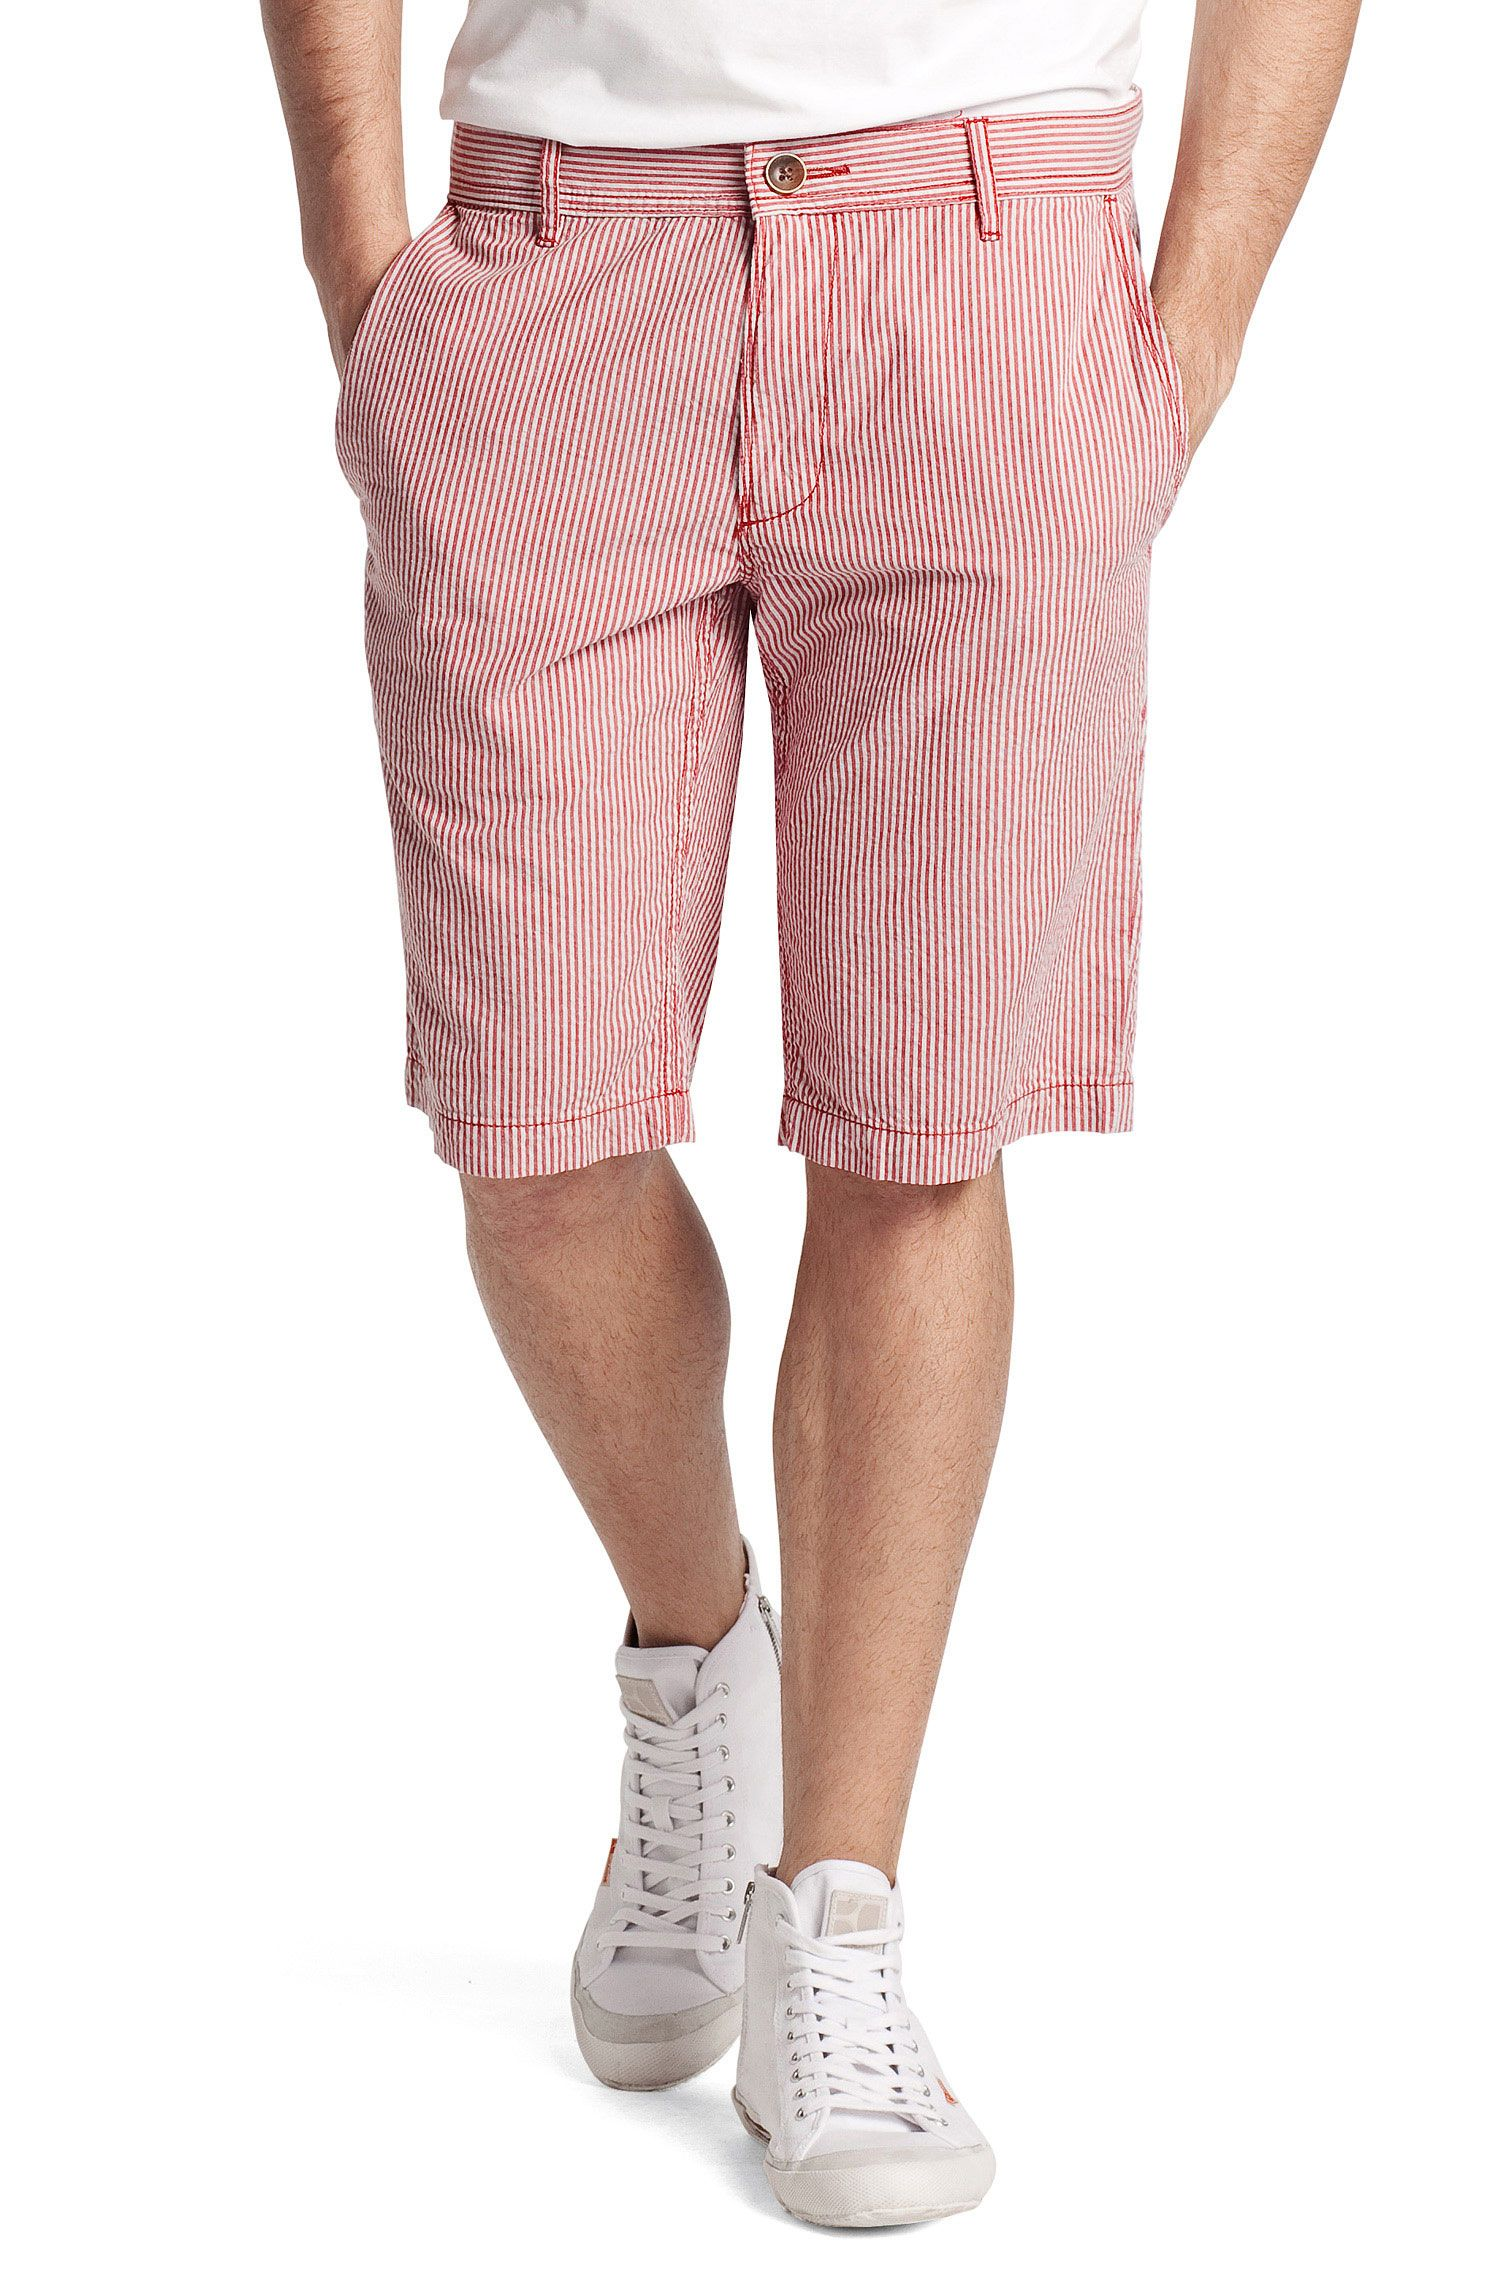 Short à rayures, Shire2-Shorts-W